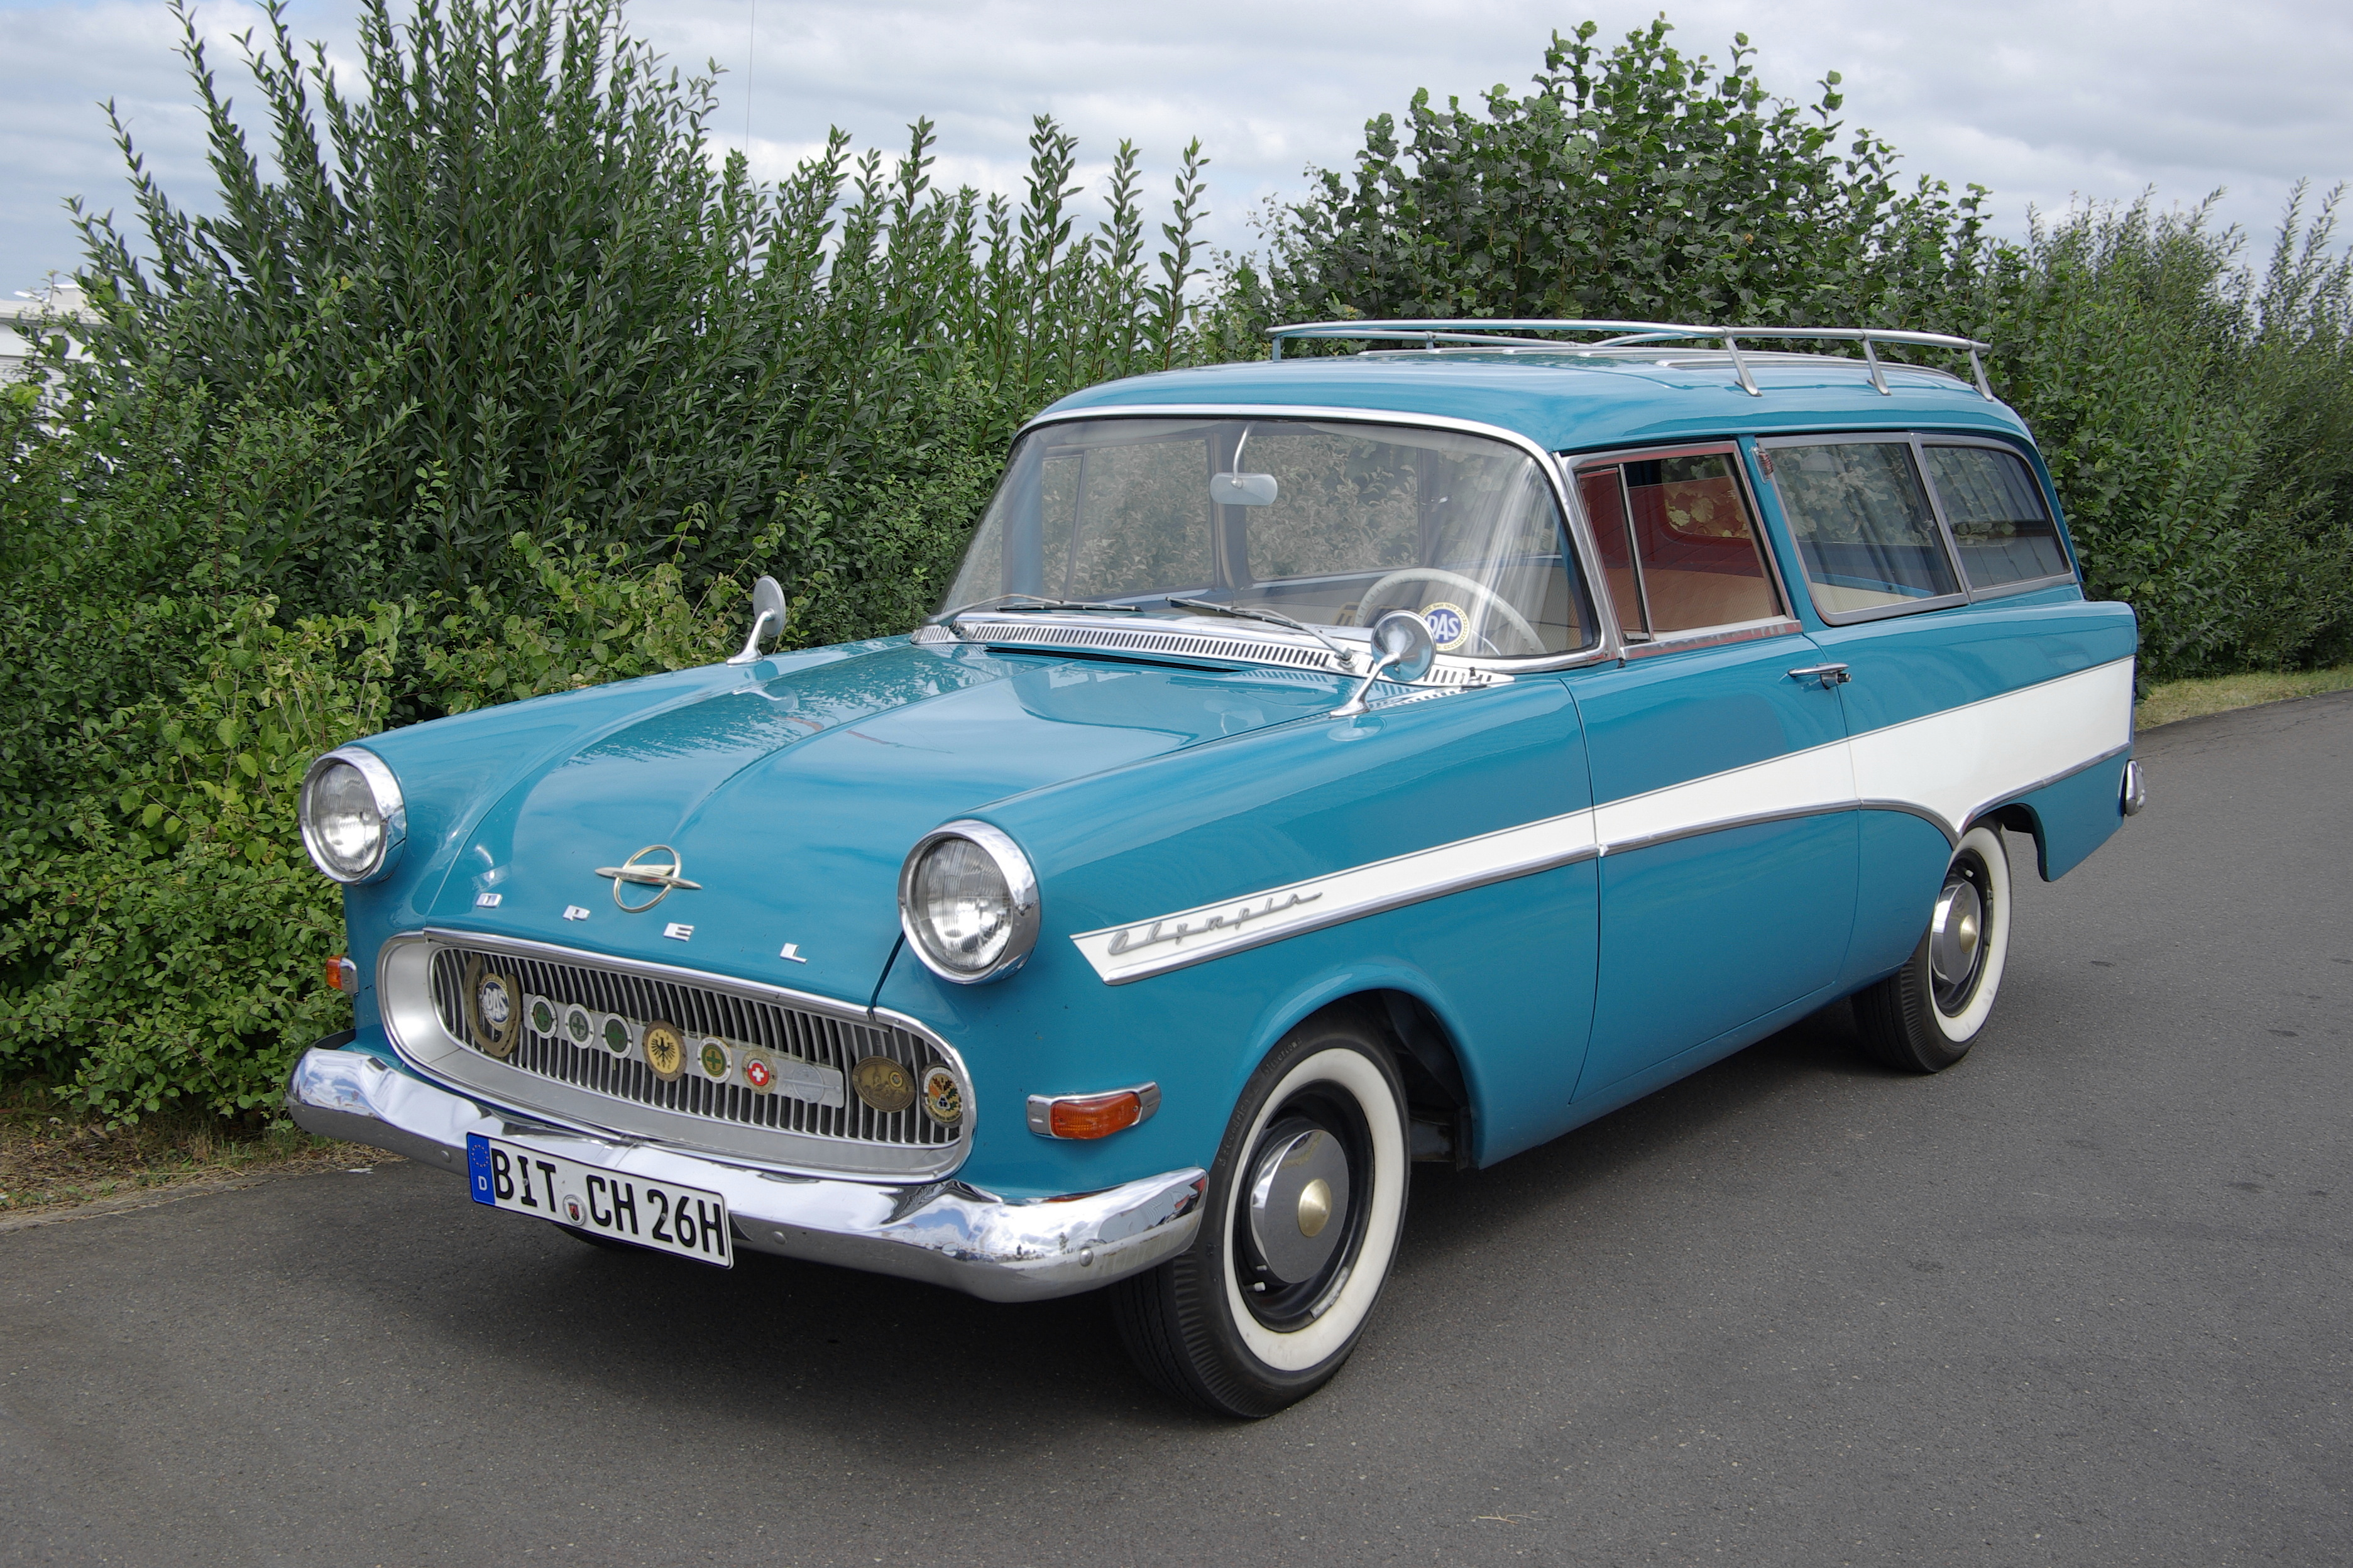 Opel Rekord P1 Wikipedia 1958 Wiring Diagram 1960 Olympia 1500 Caravan 1488 Cc 4 Cylinder 45 Hp Original Condition